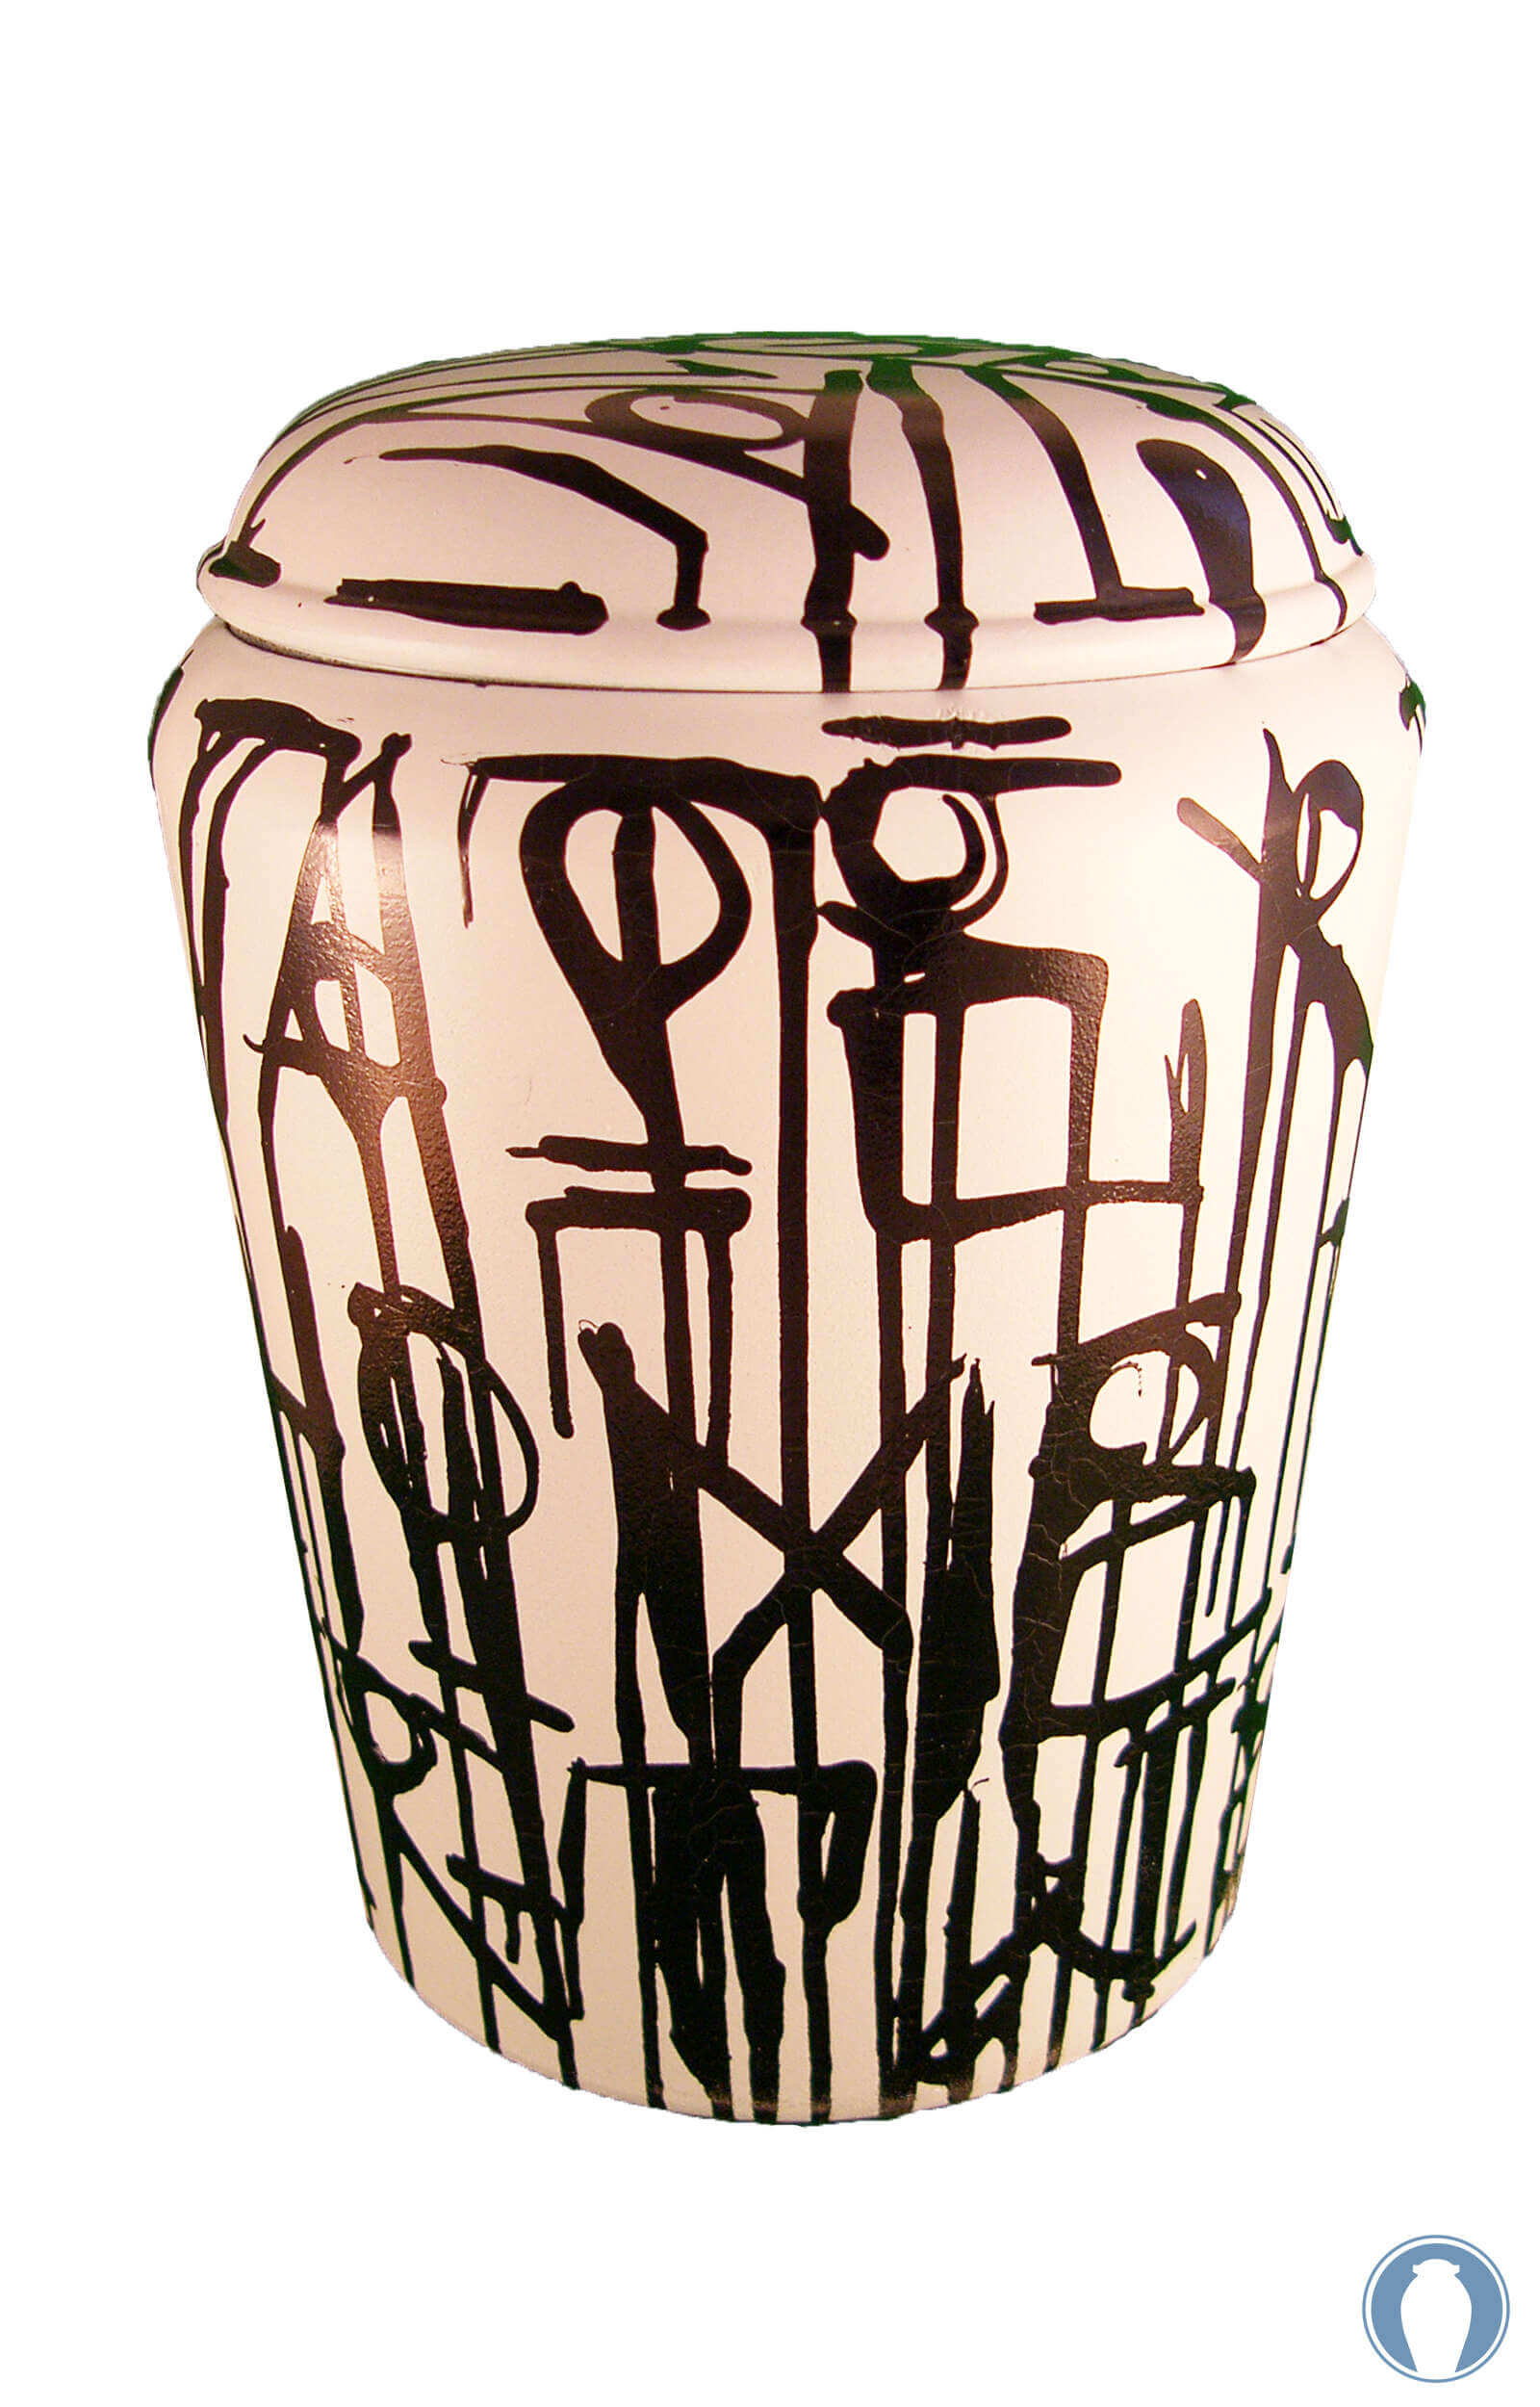 en KB01 biodegradable black and white abstract urn